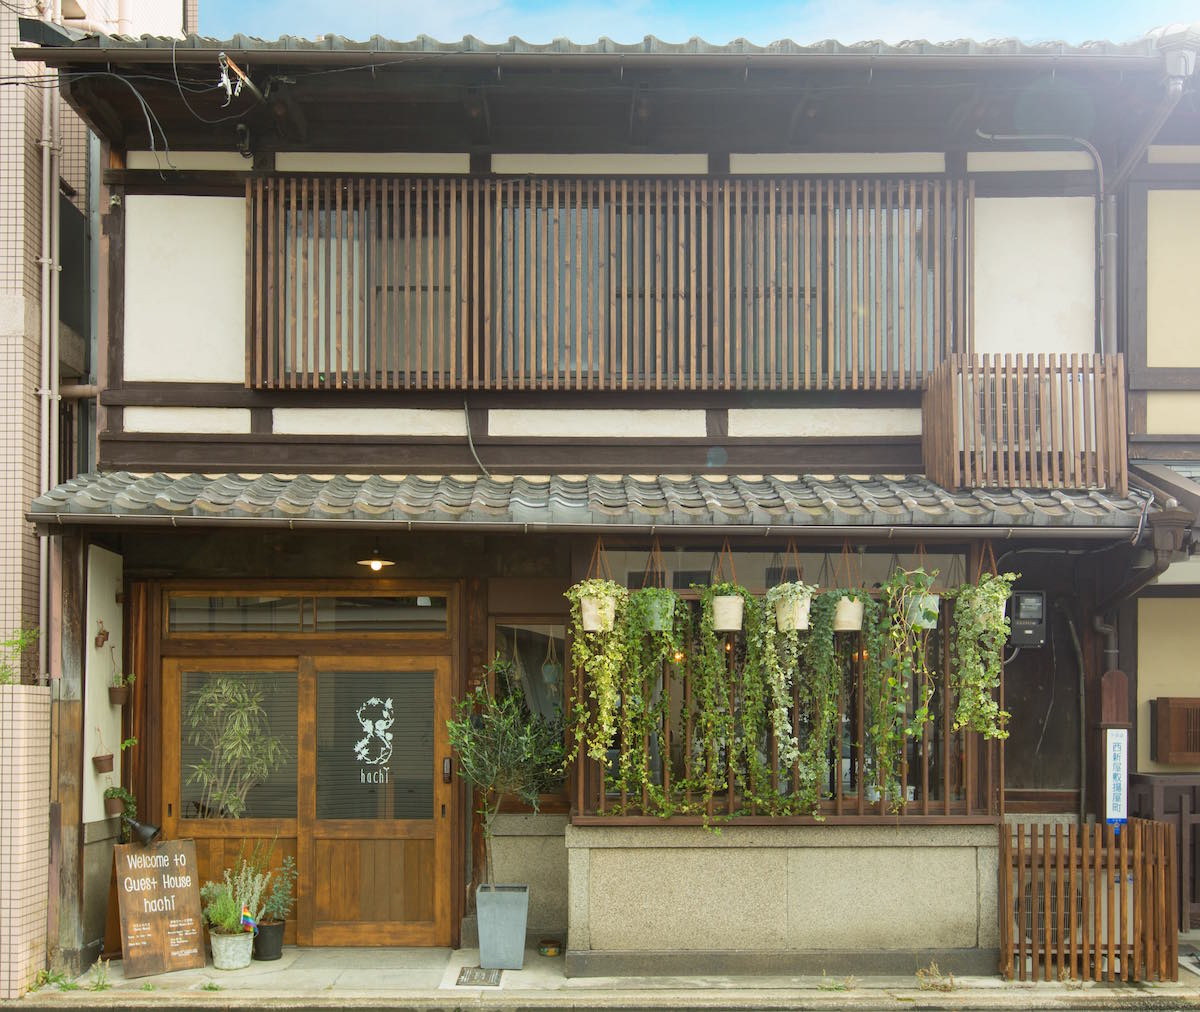 |Free Accommodation, helper|Kyoto|Join our guesthouse in the historical Shimabara district, Kyoto, Japan